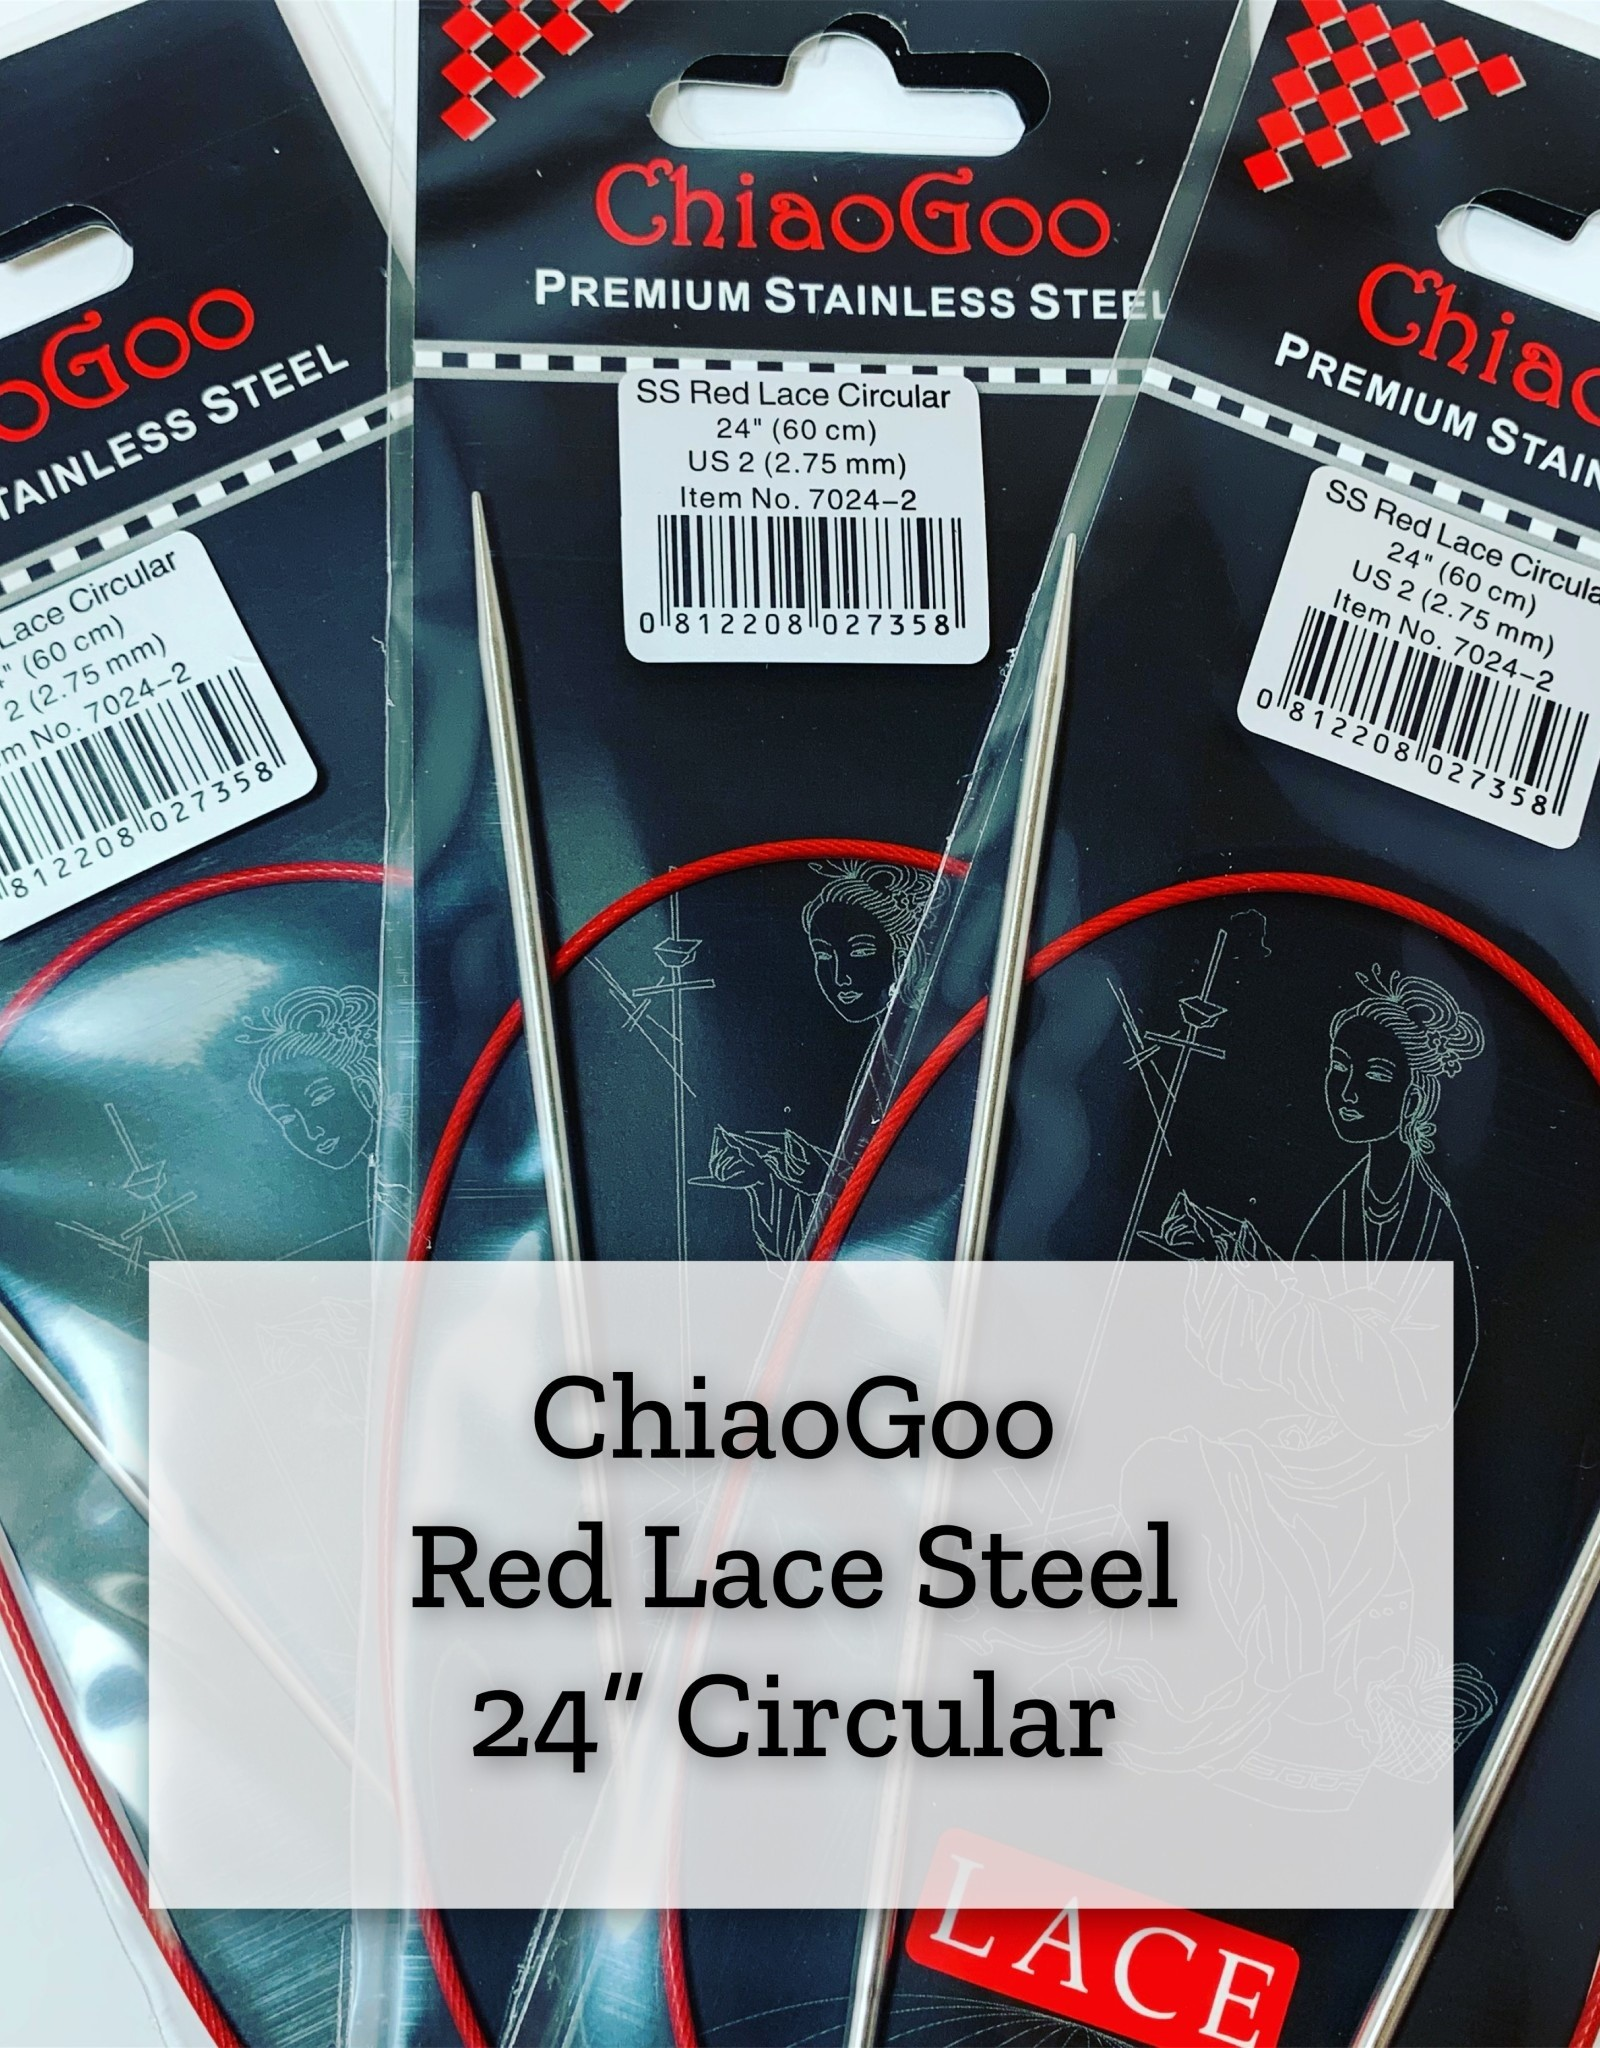 "ChiaoGoo Red Lace Steel - 24"" 8 mm"